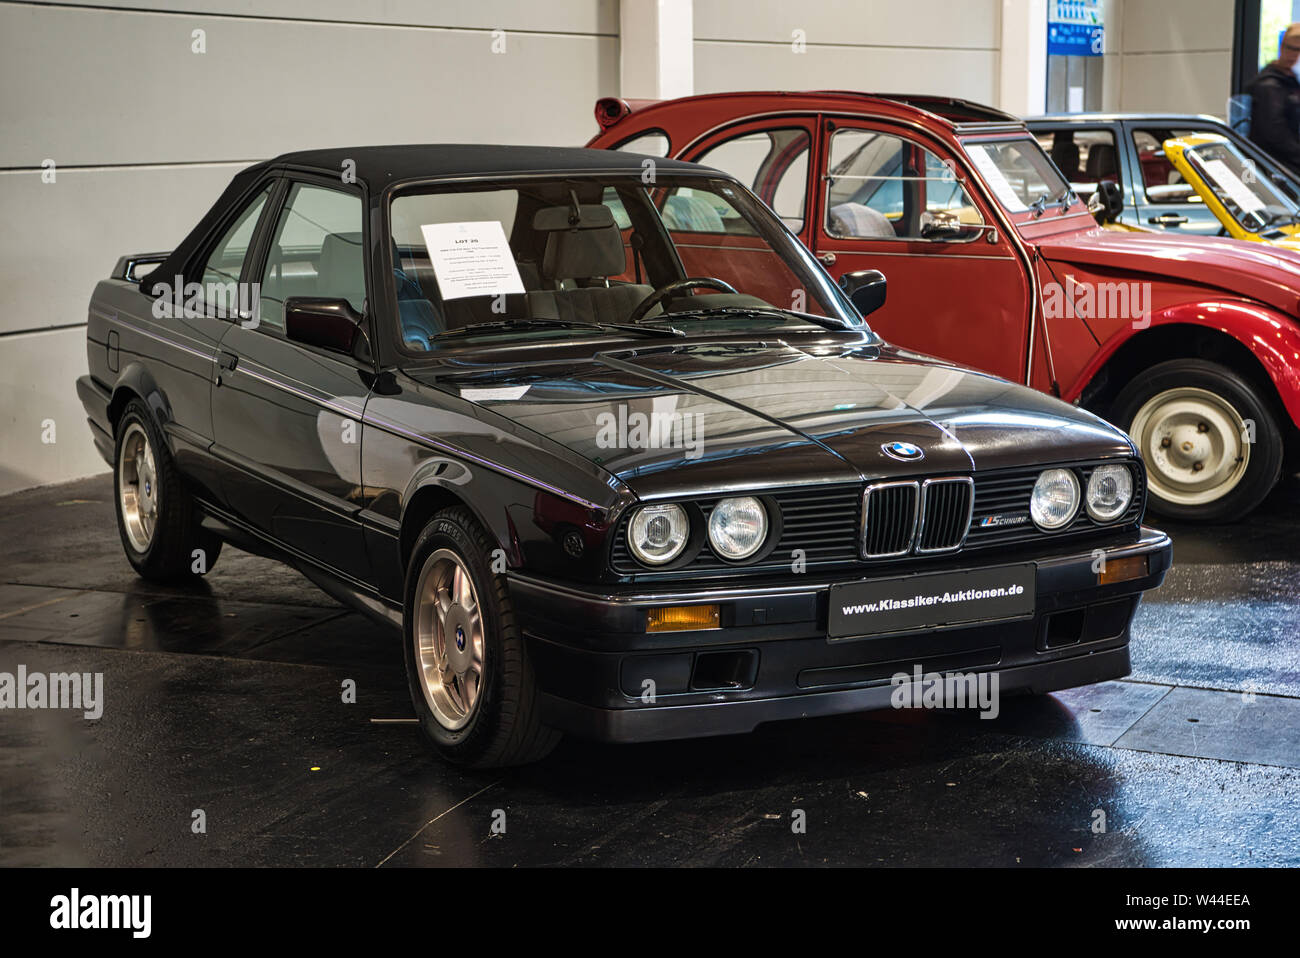 Bmw E30 M3 High Resolution Stock Photography And Images Alamy